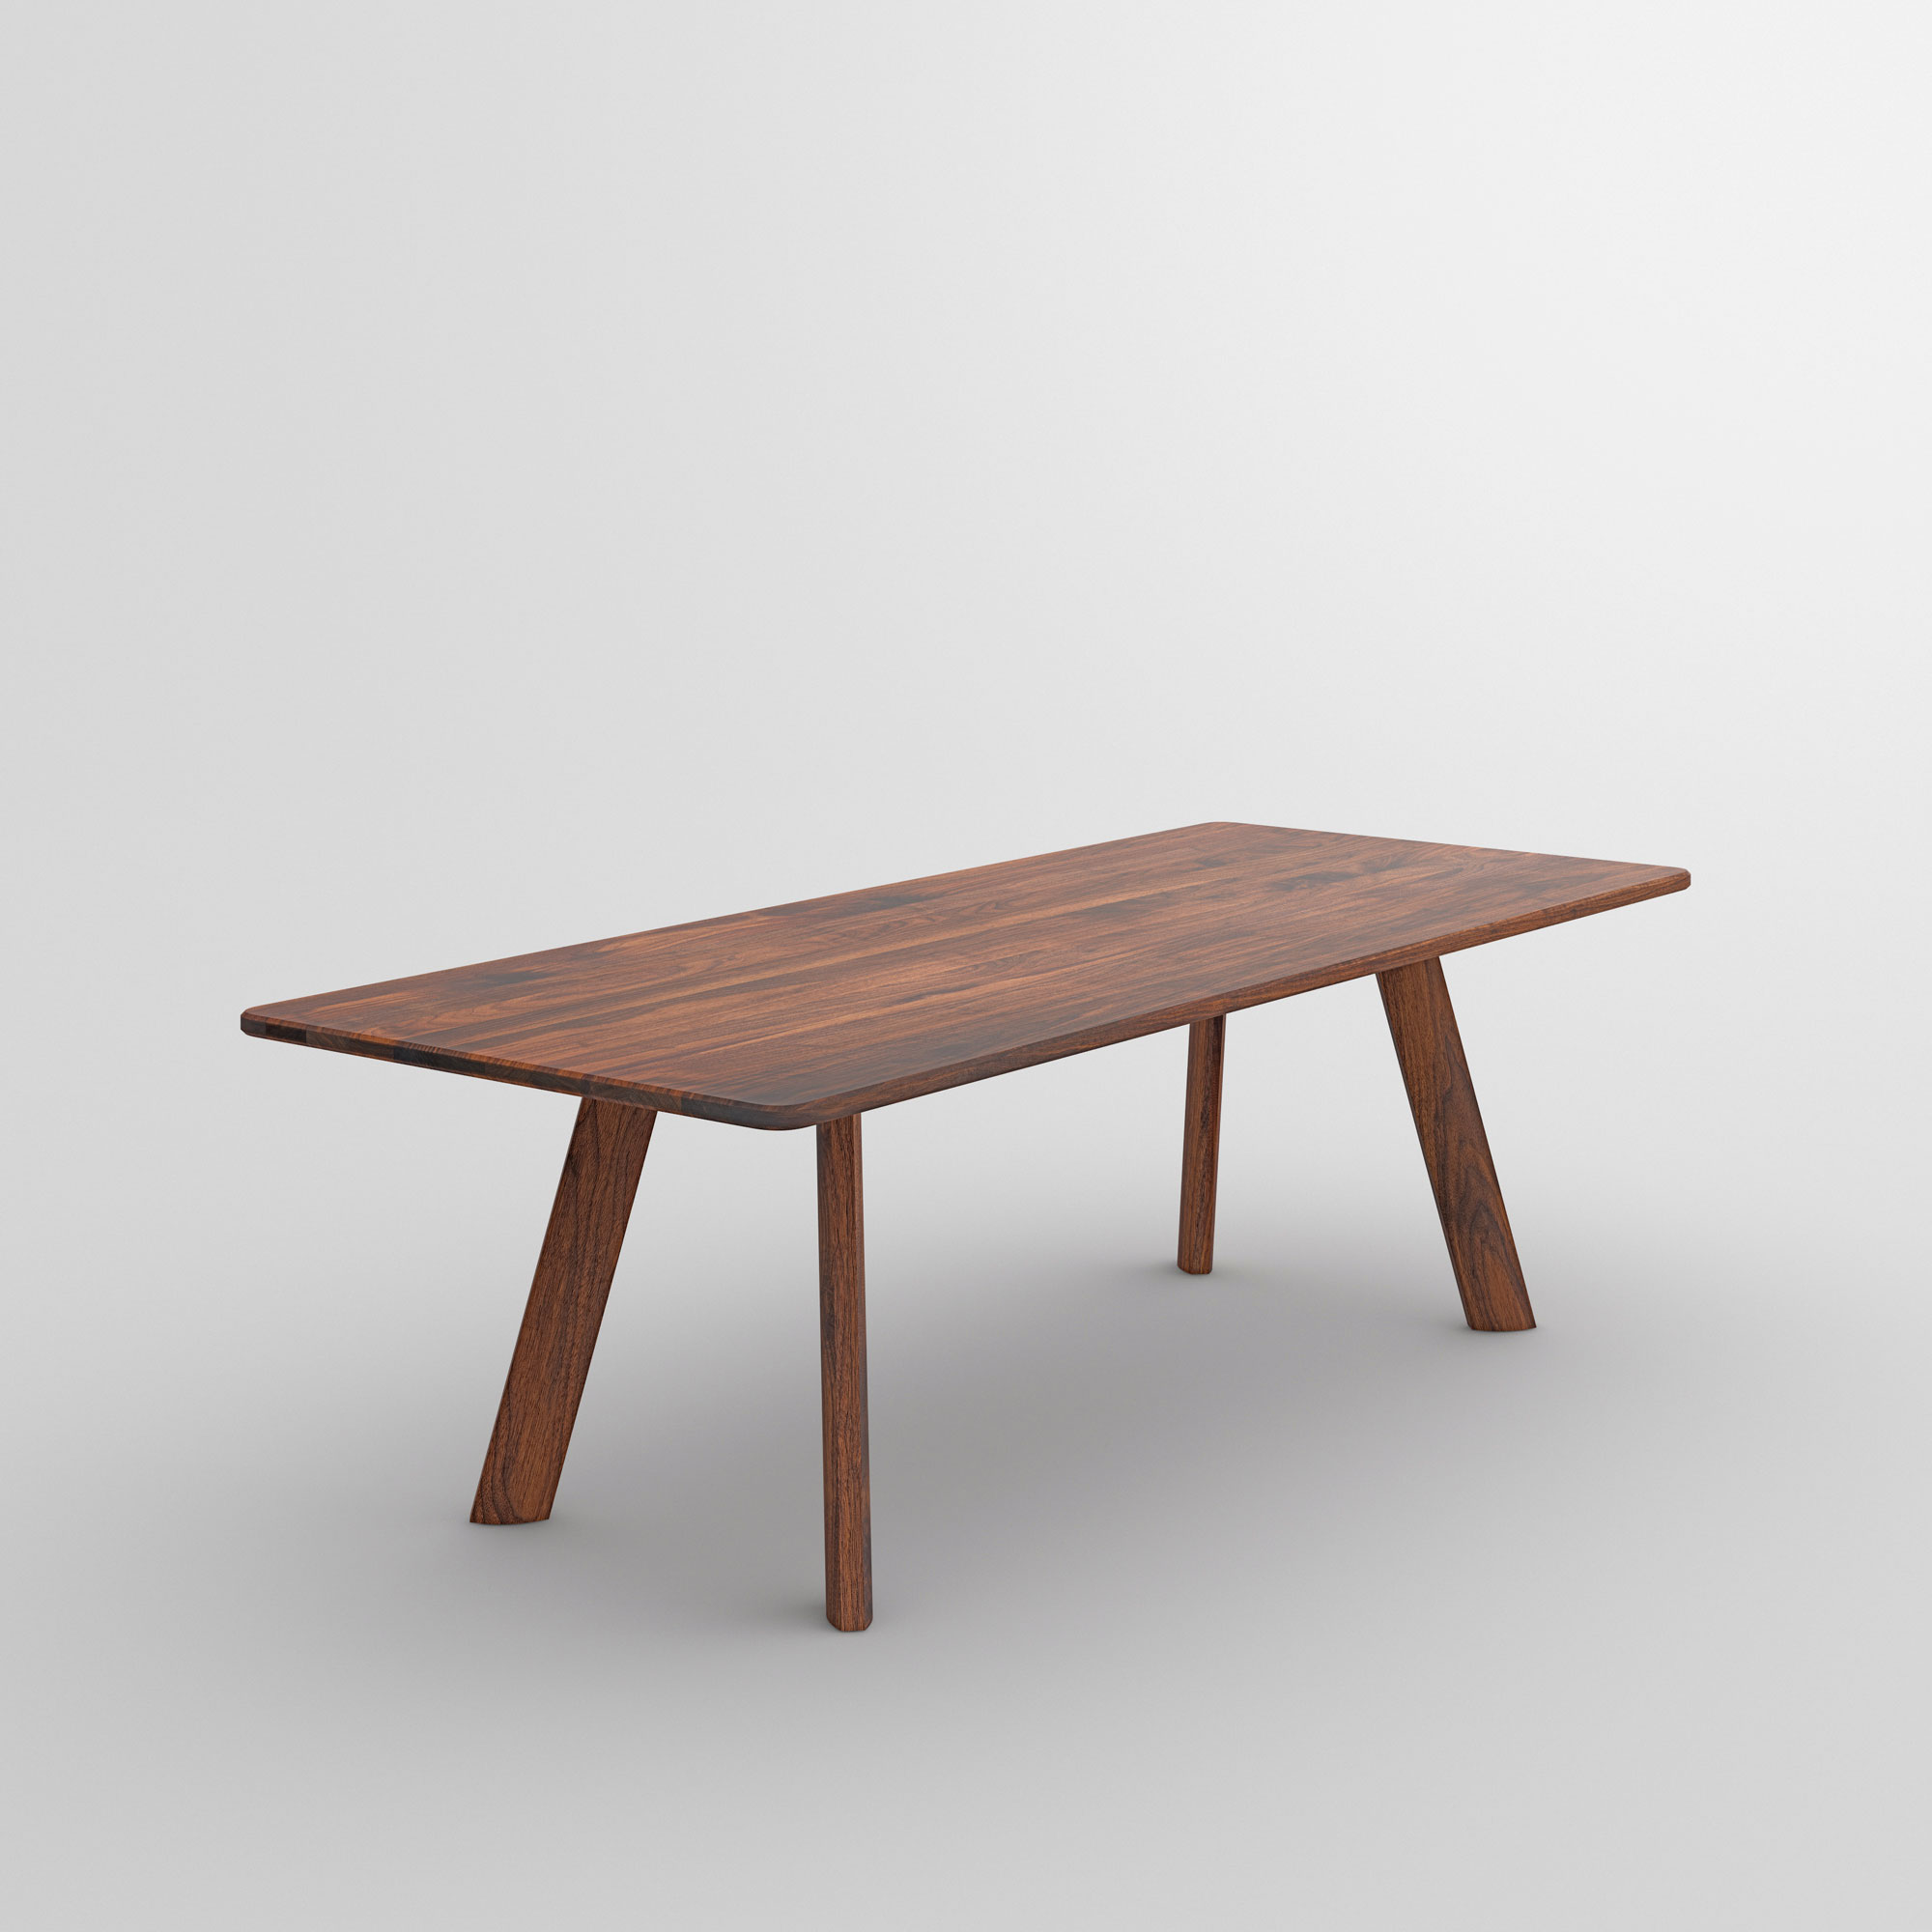 Designer Dining Table LARGUS cam2 custom made in solid wood by vitamin design